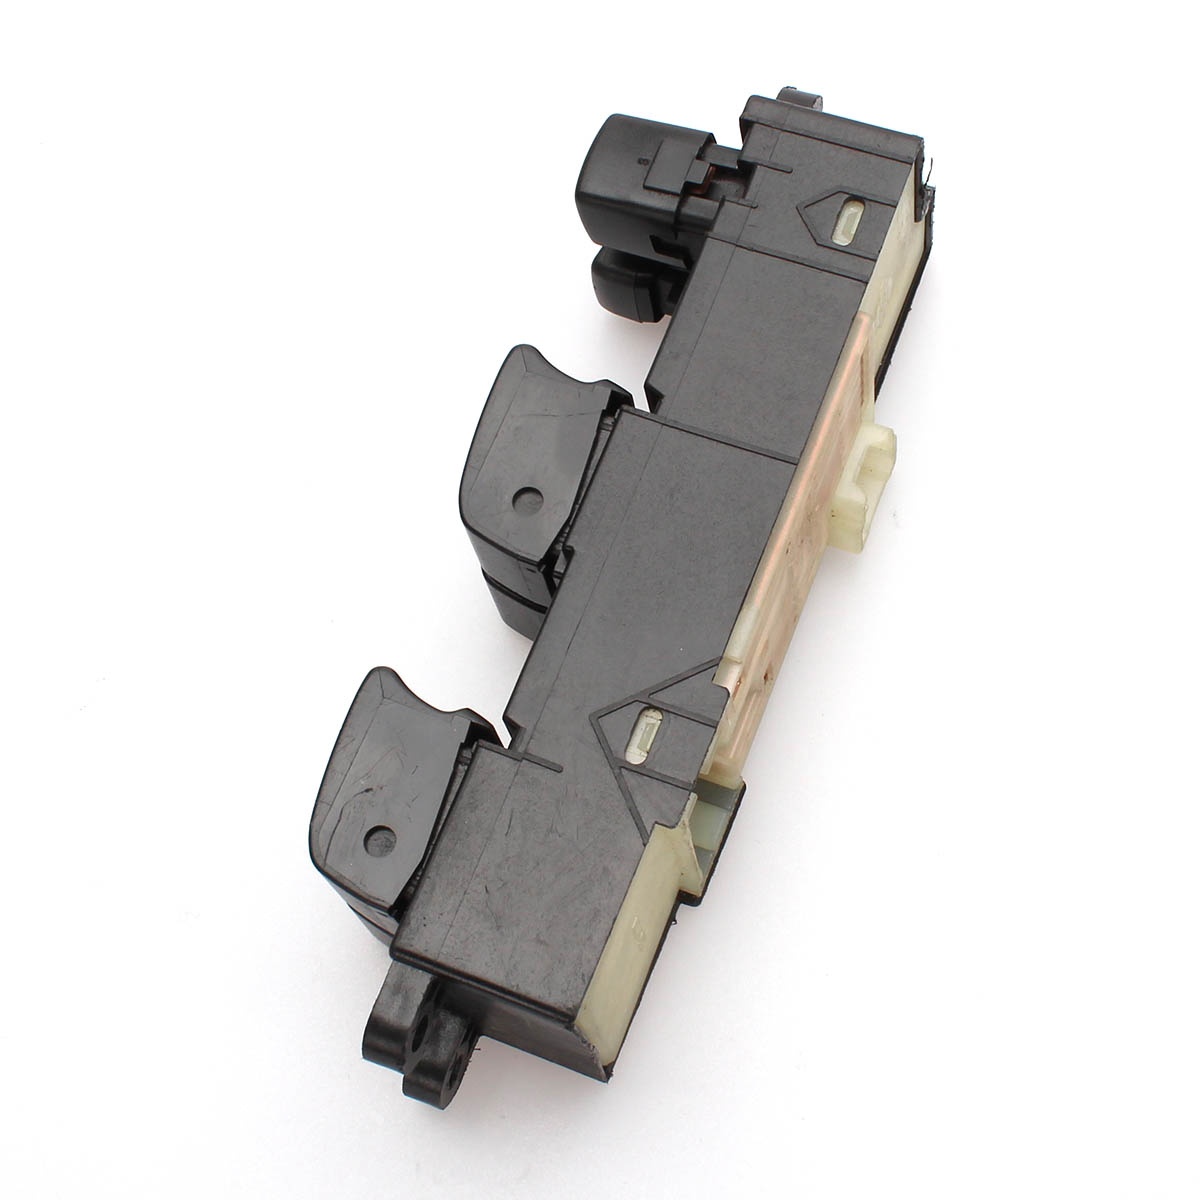 25401 2y910 high quality new power window switch for for 2002 nissan sentra window motor